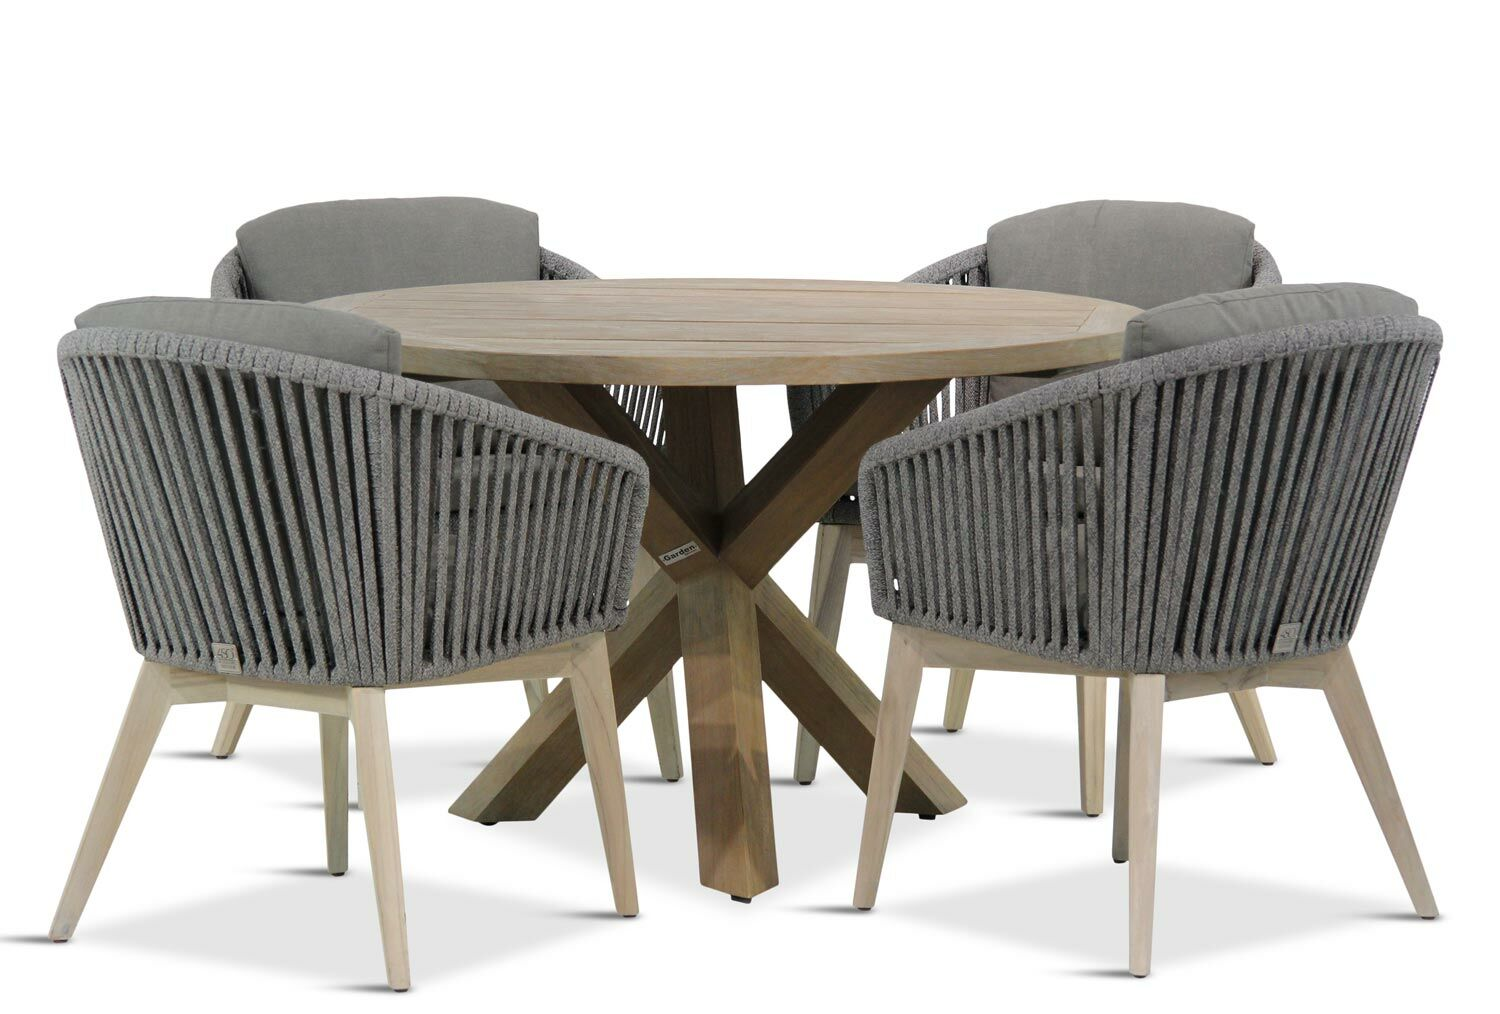 Ronde Houten Tuinset.4 Seasons Outdoor Santander Sand City Rond 120 Cm Dining Tuinset 5 Delig